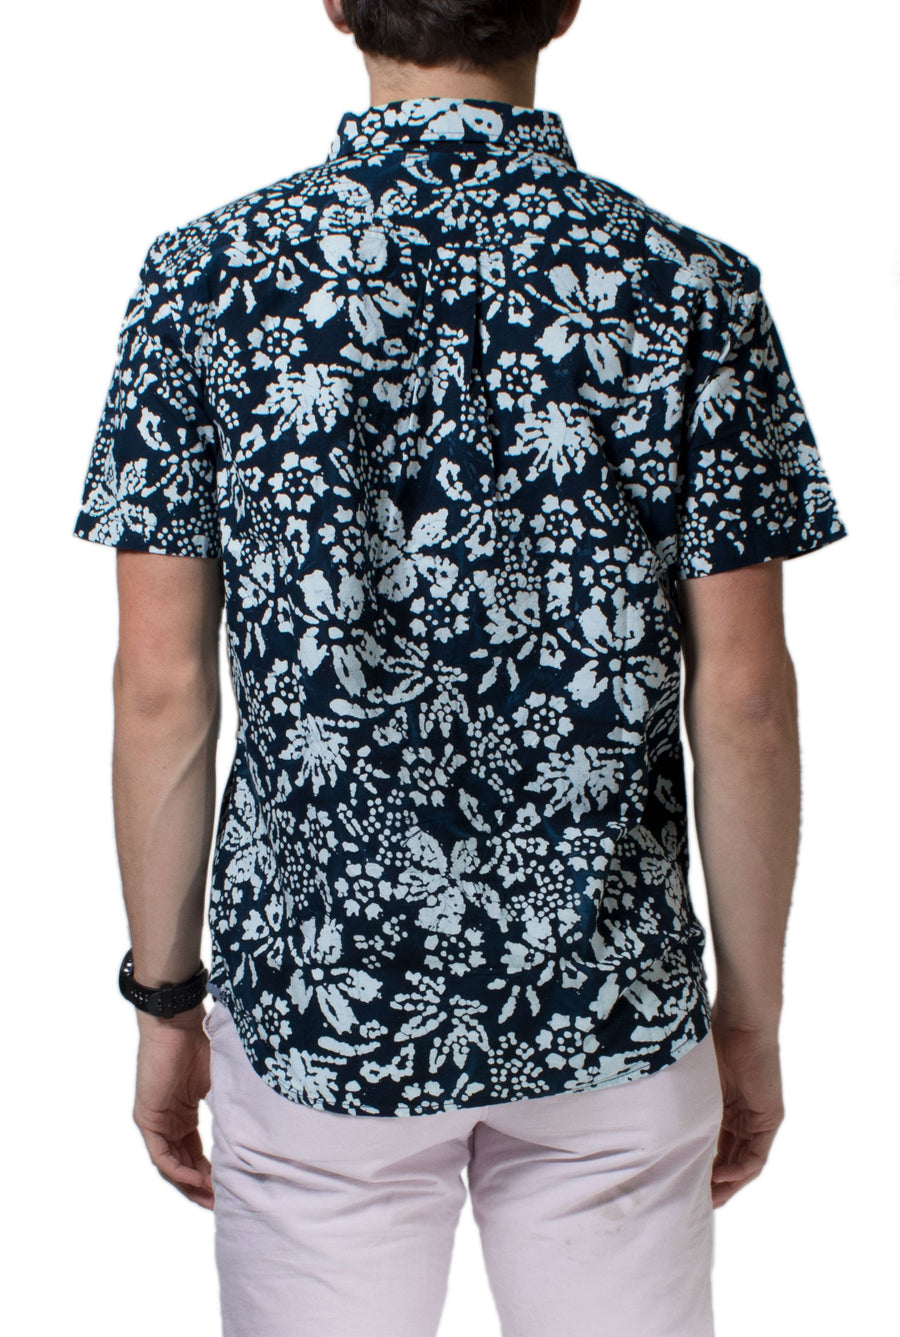 Vans Trippin Batik Buttondown Shirt - Trippin